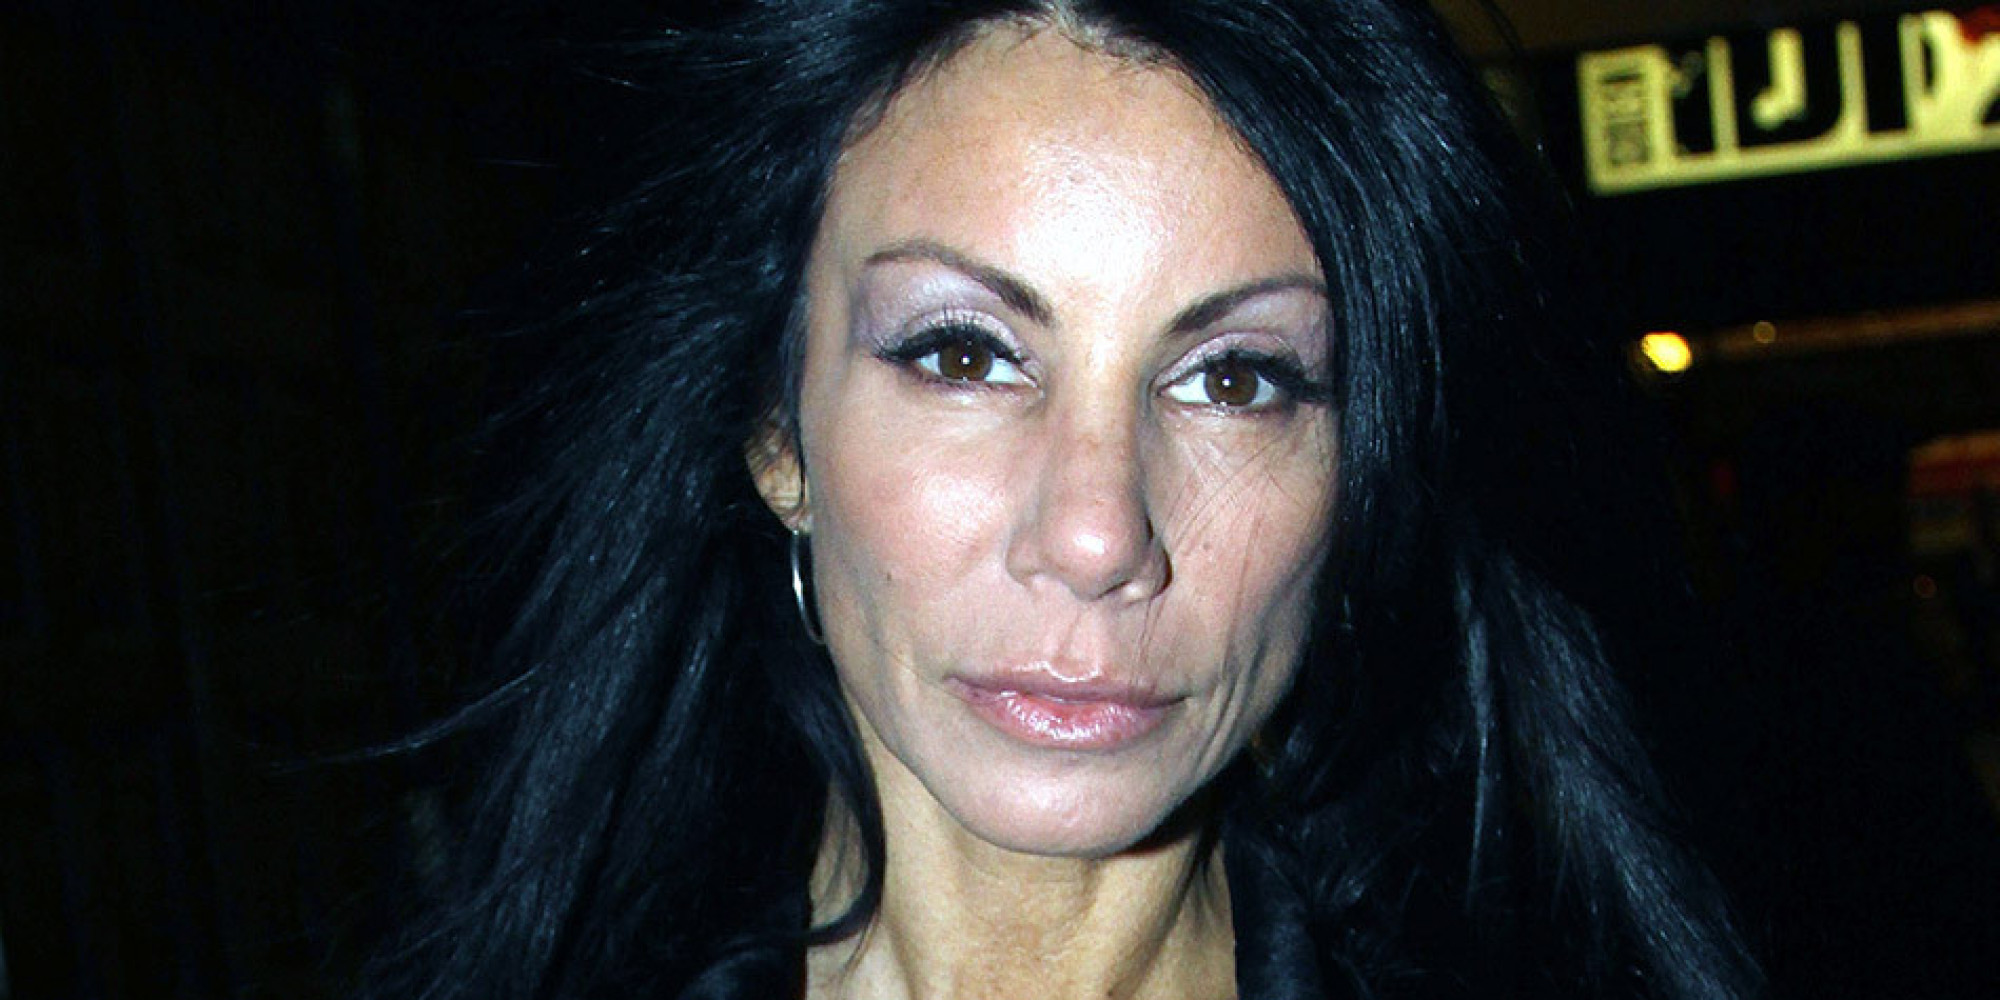 Danielle Staub On Contemplating Suicide After 'Real